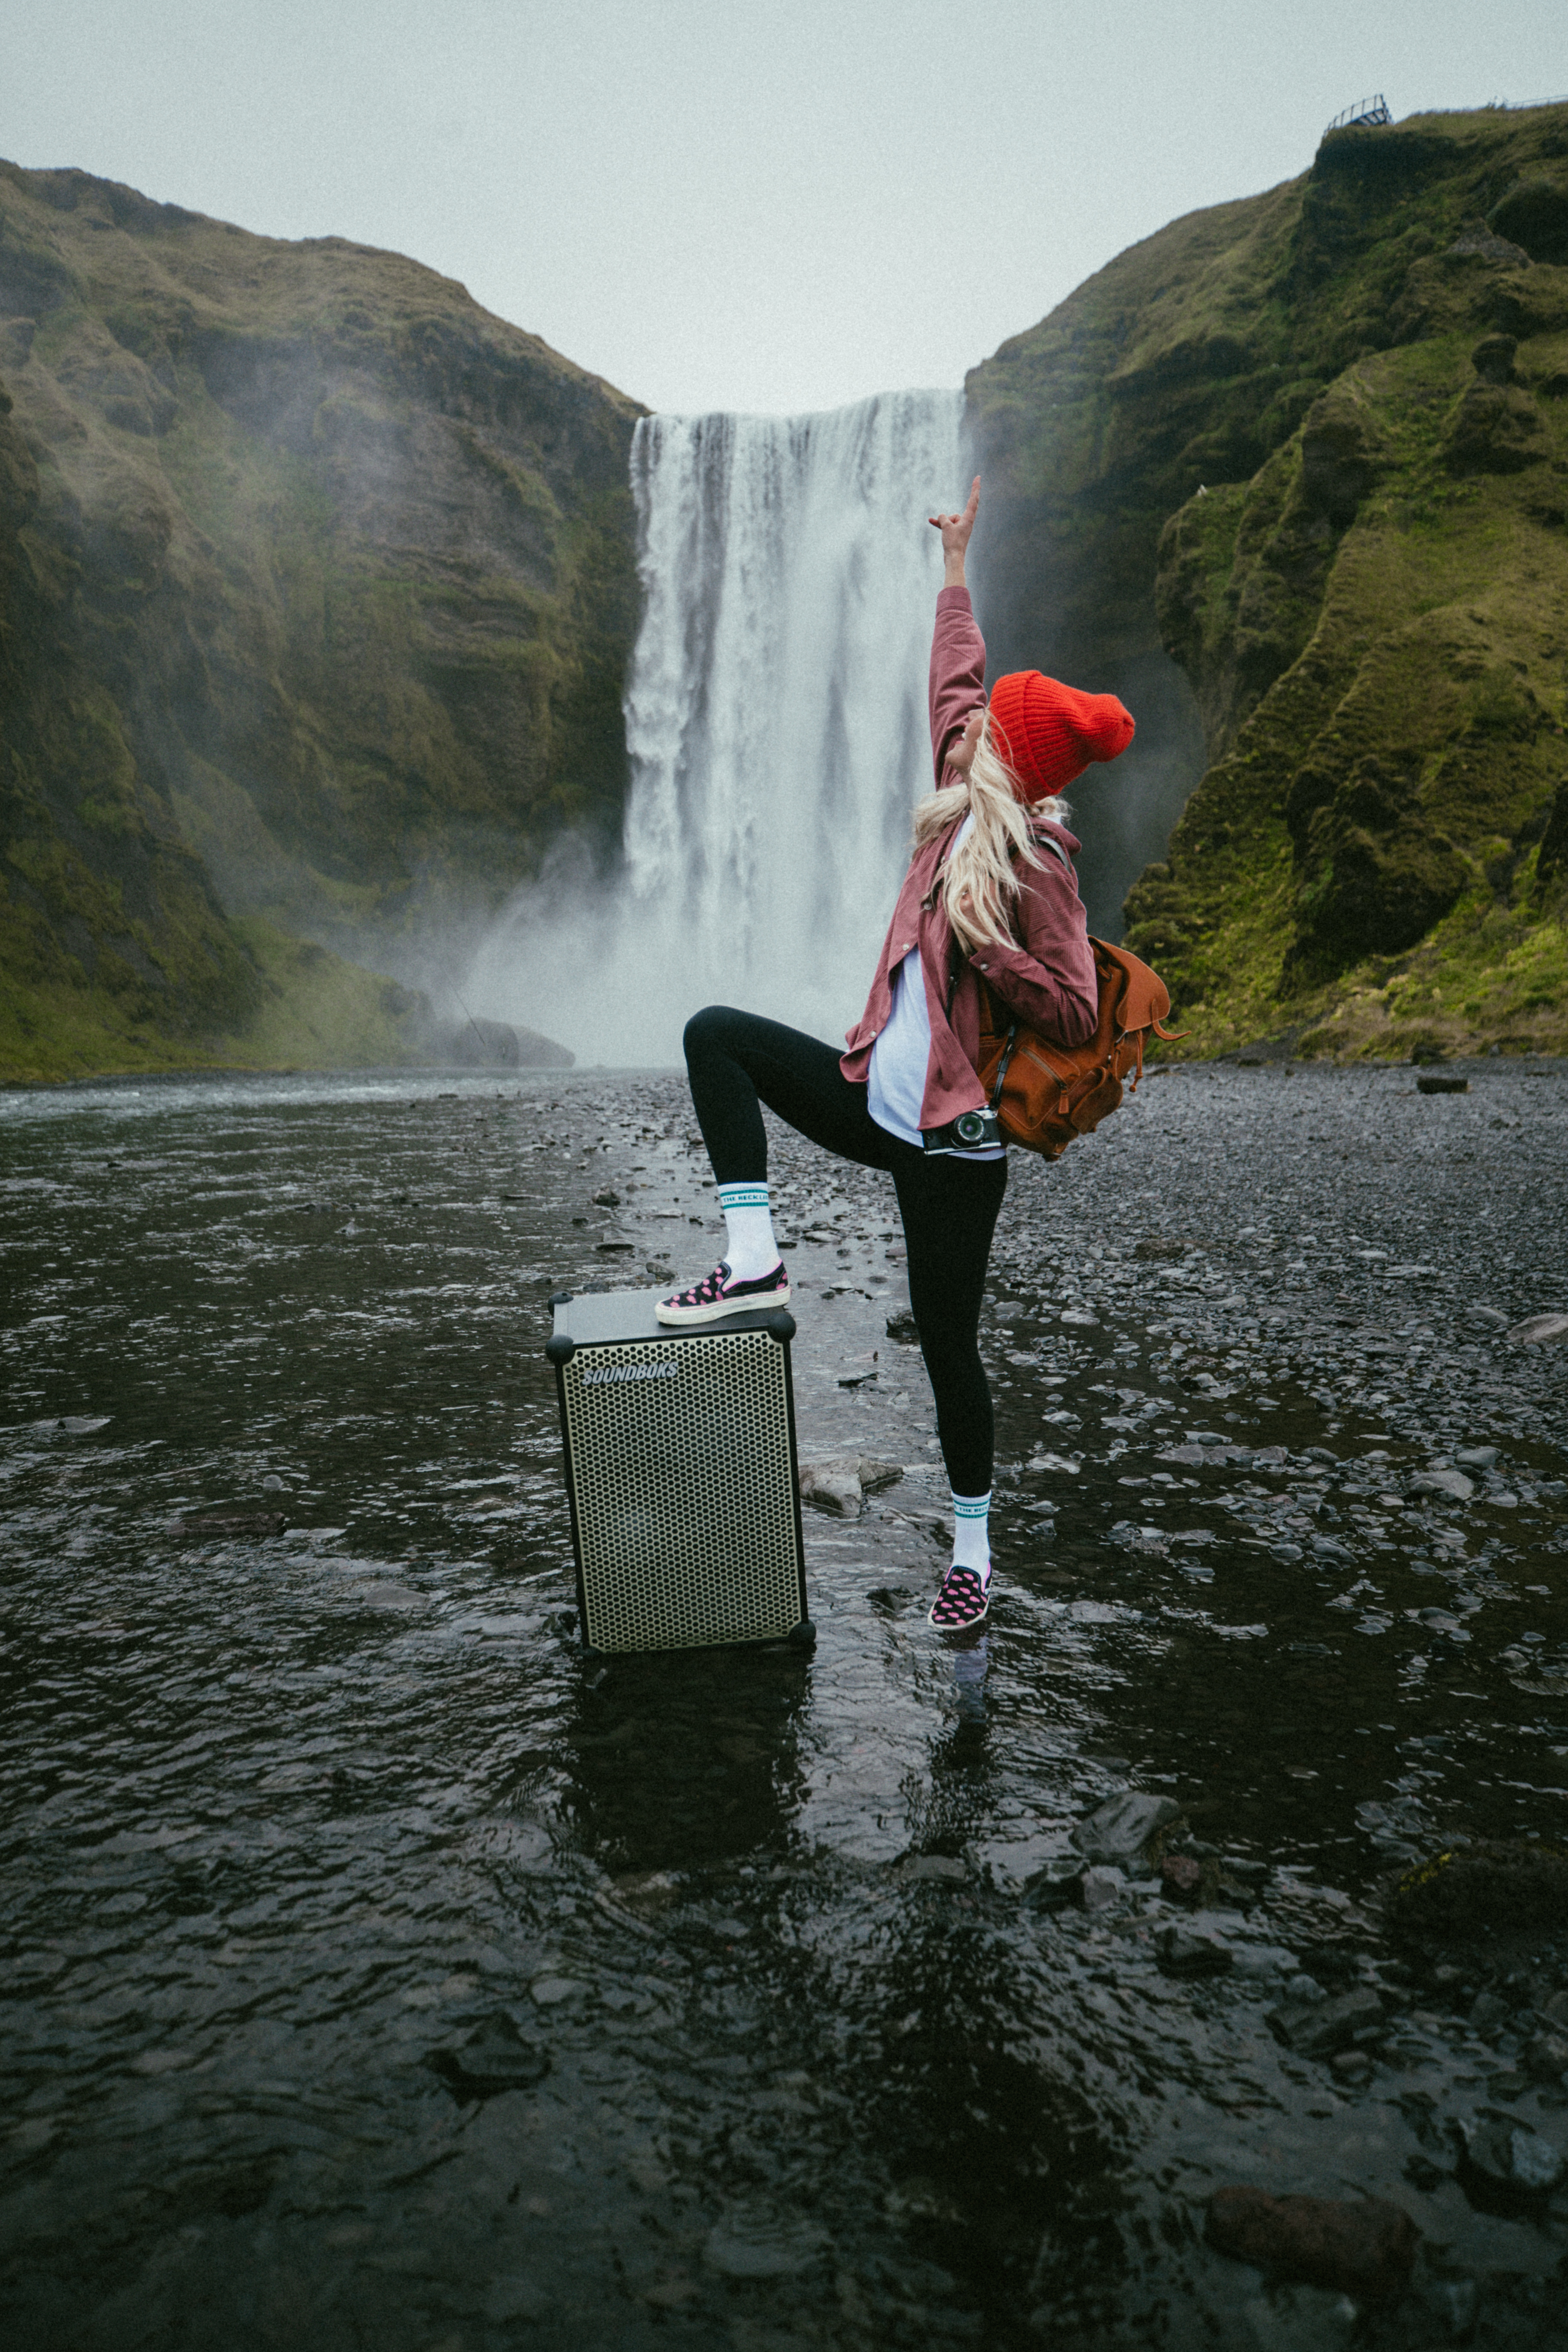 Social media influencer, Asa, in iceland with a SOUNDBOKS martian edition in front of a waterfall.